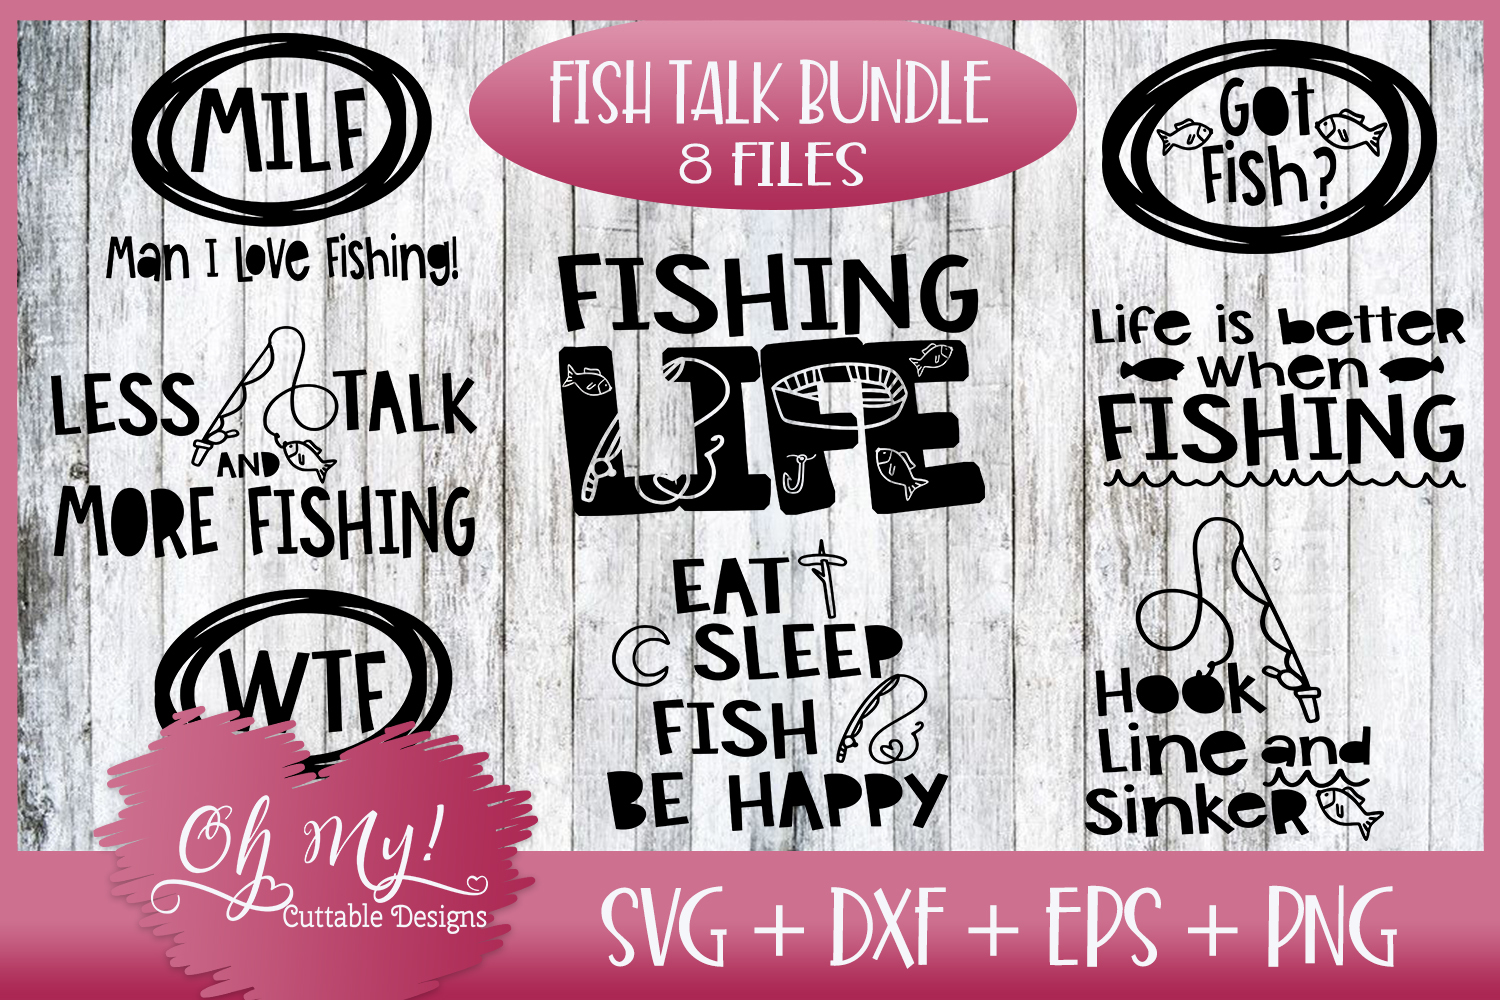 OH MY! HUGE FISHING BUNDLE DESIGNS SVG DXF EPS PNG example image 3